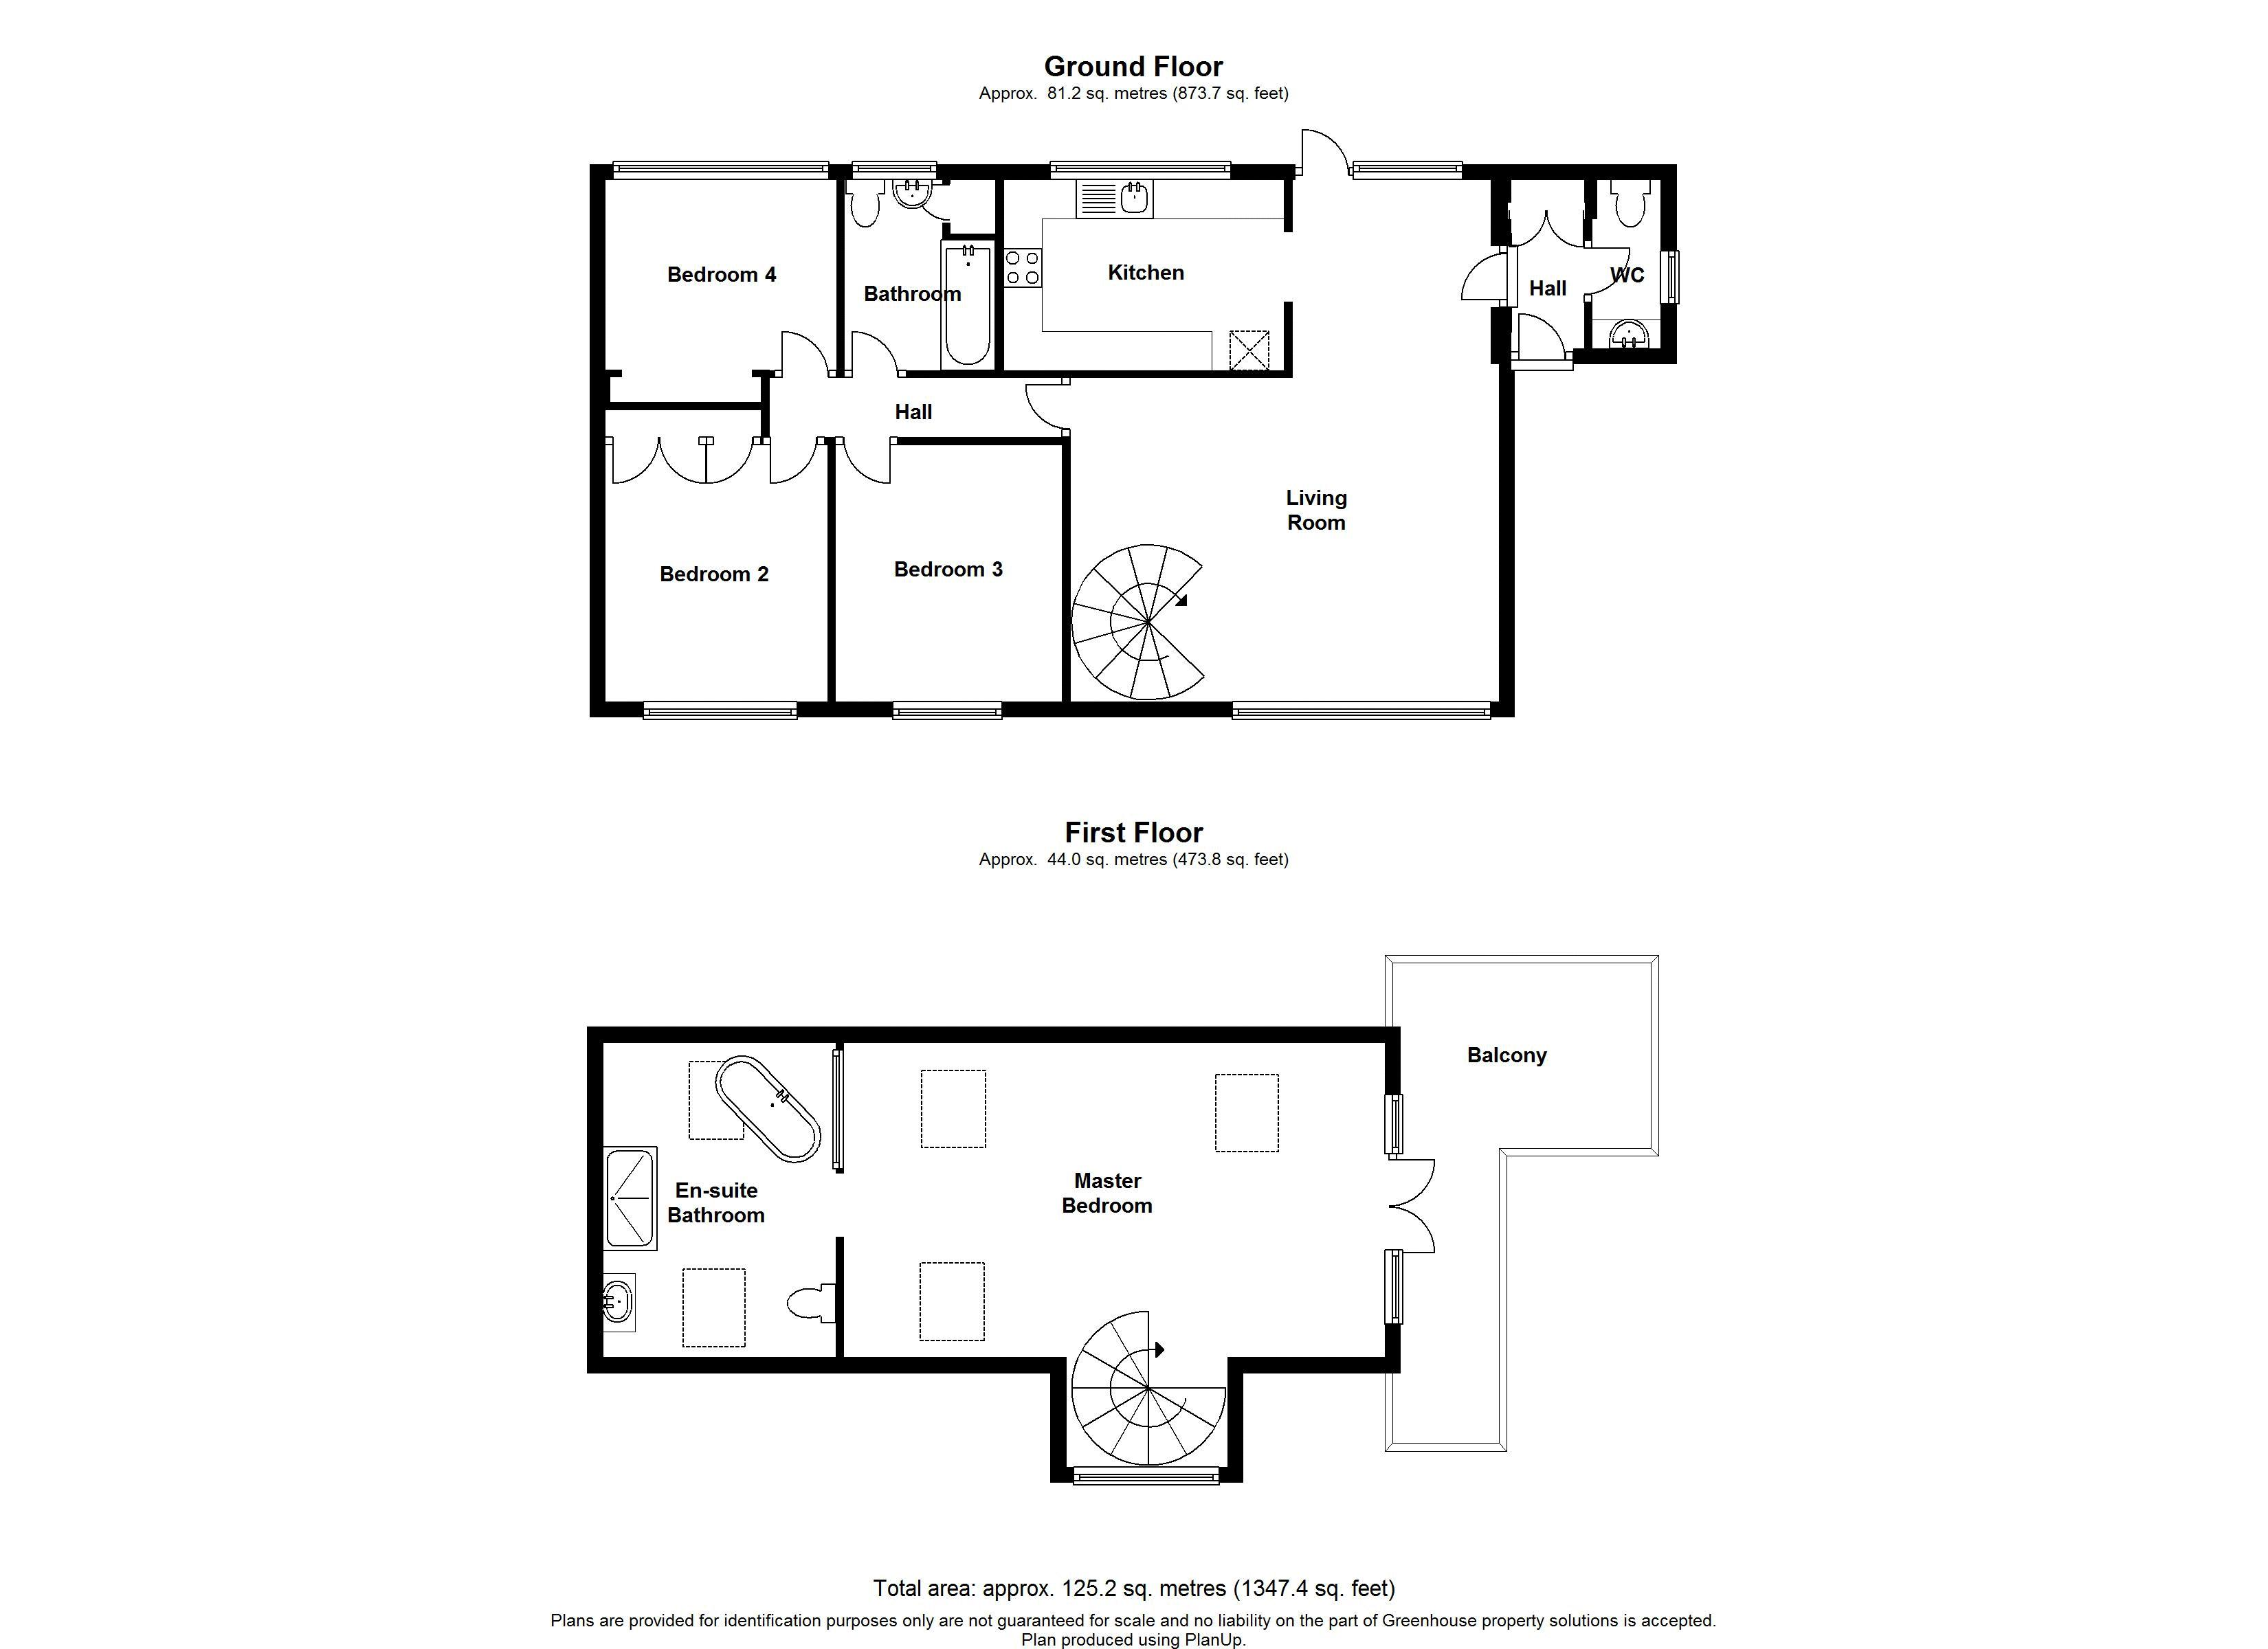 Highland Road, Shortlands,Bromley, BR1 floor plan